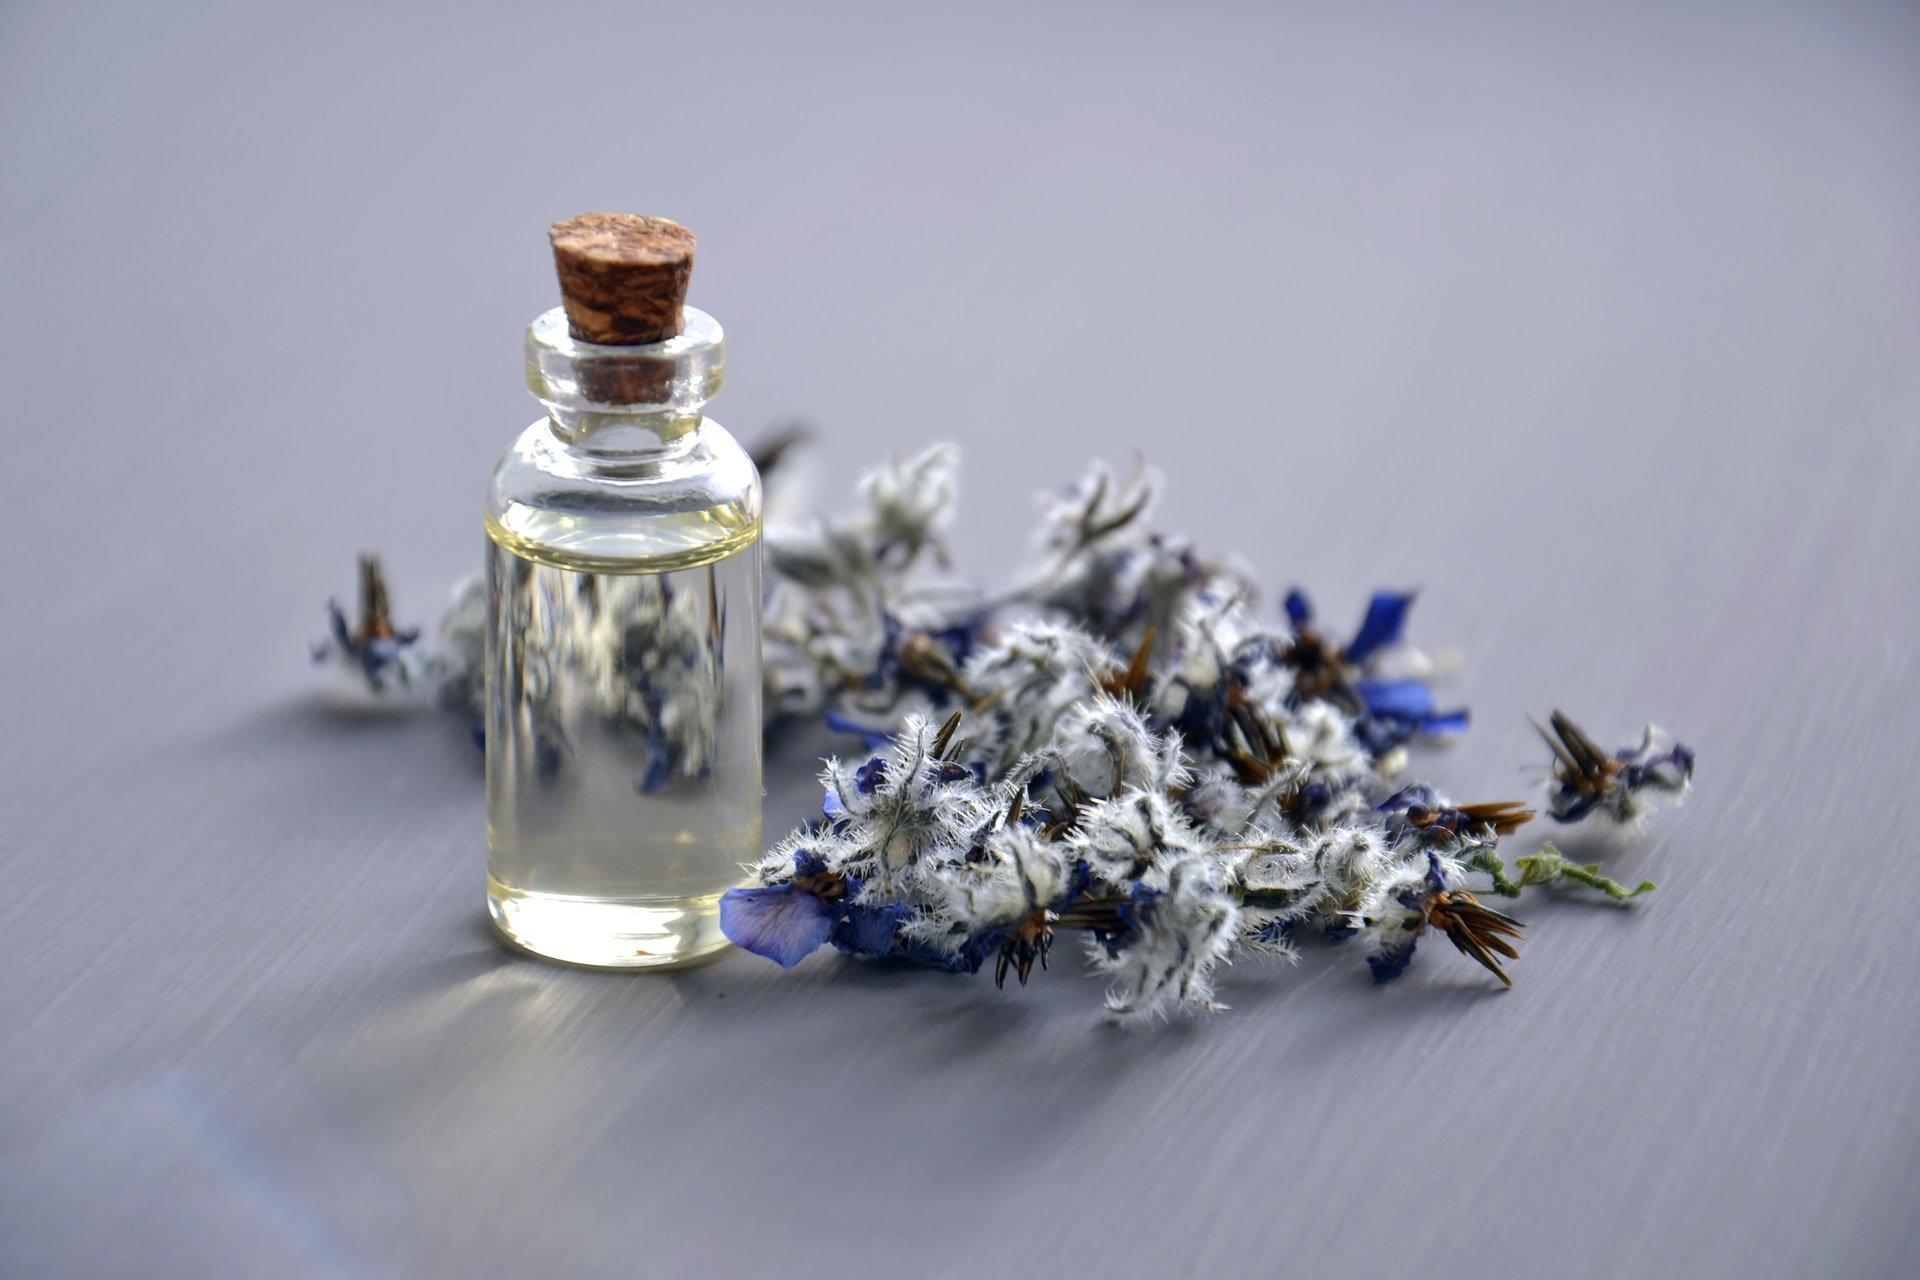 flowers and bottle of essential oil